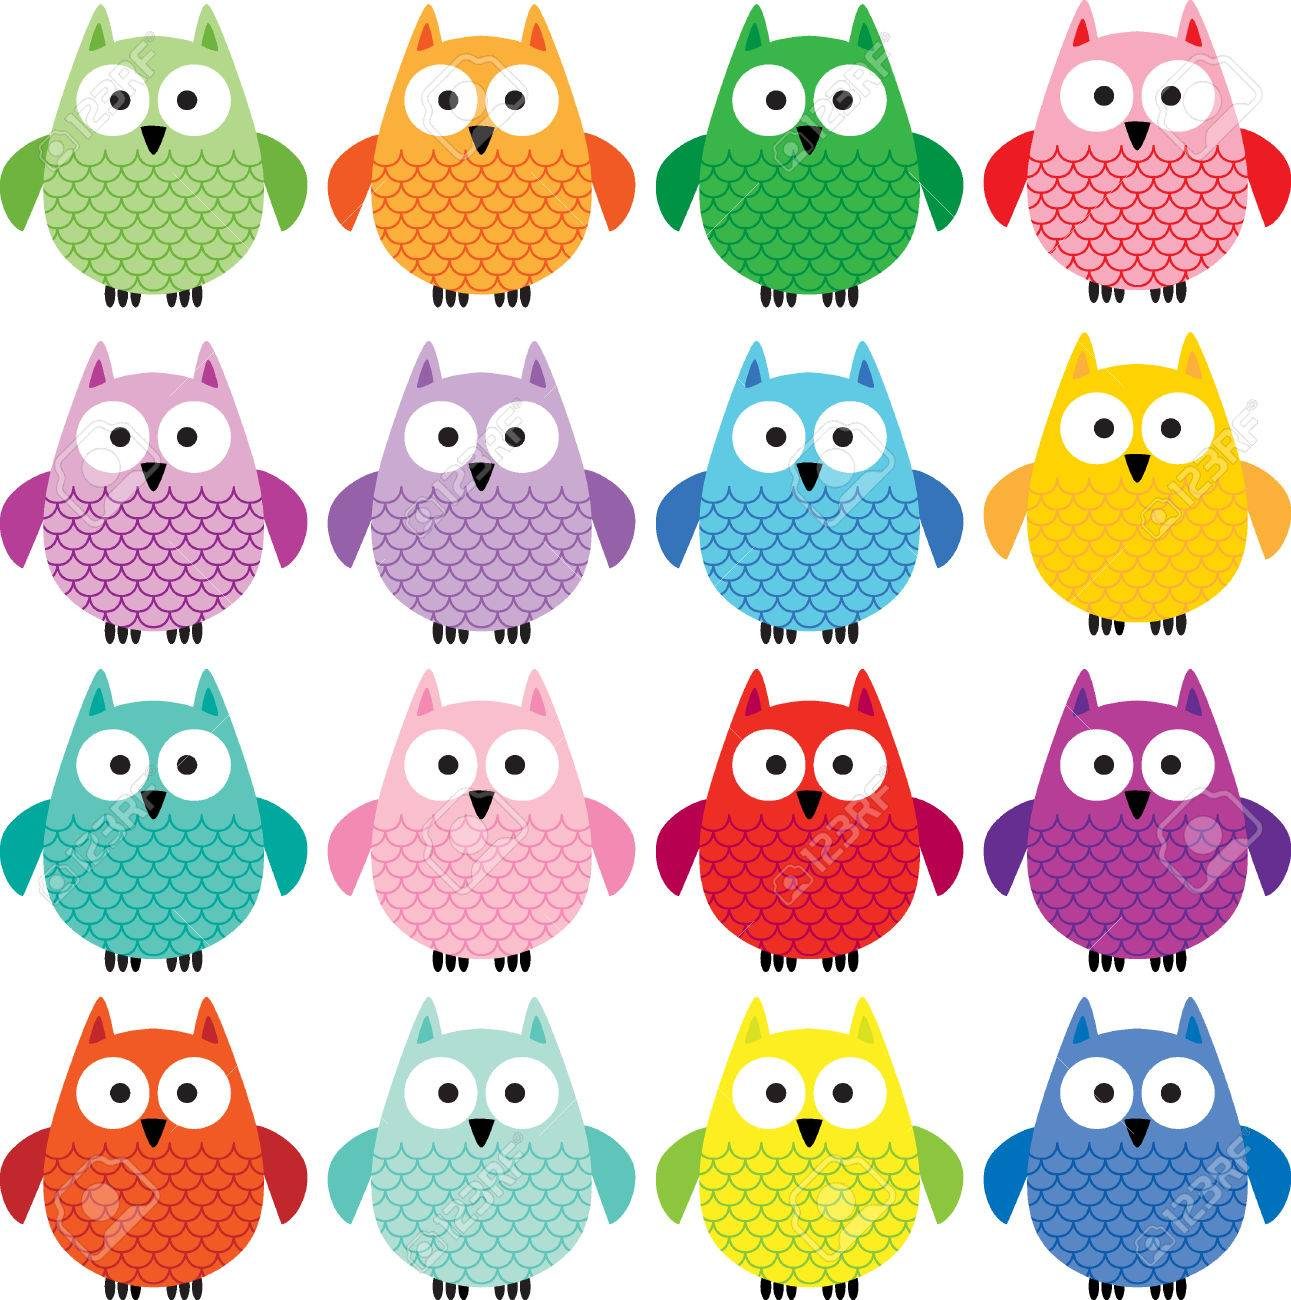 Cute Owl Clipart Royalty Free Cliparts, Vectors, And Stock.